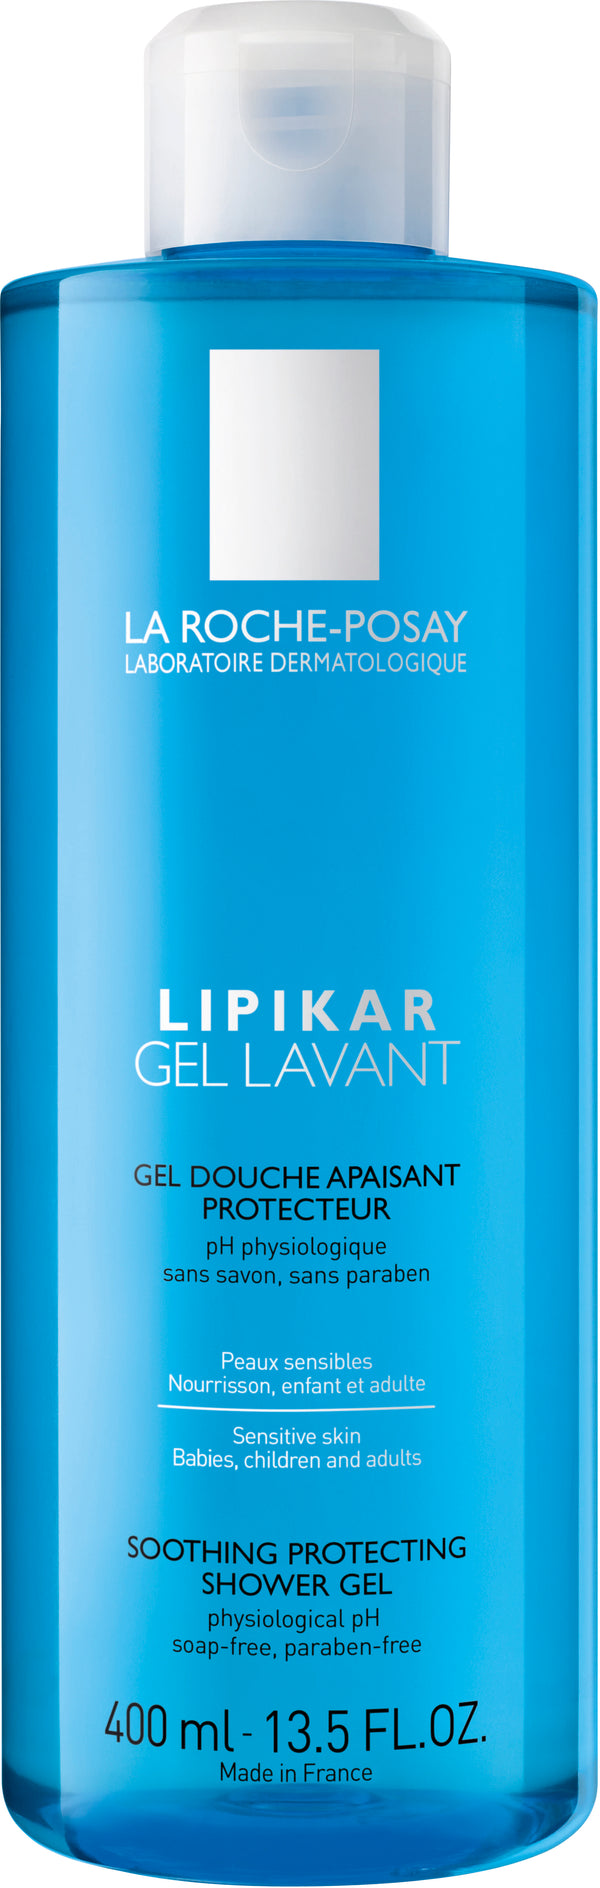 La Roche-Posay Shower Gel